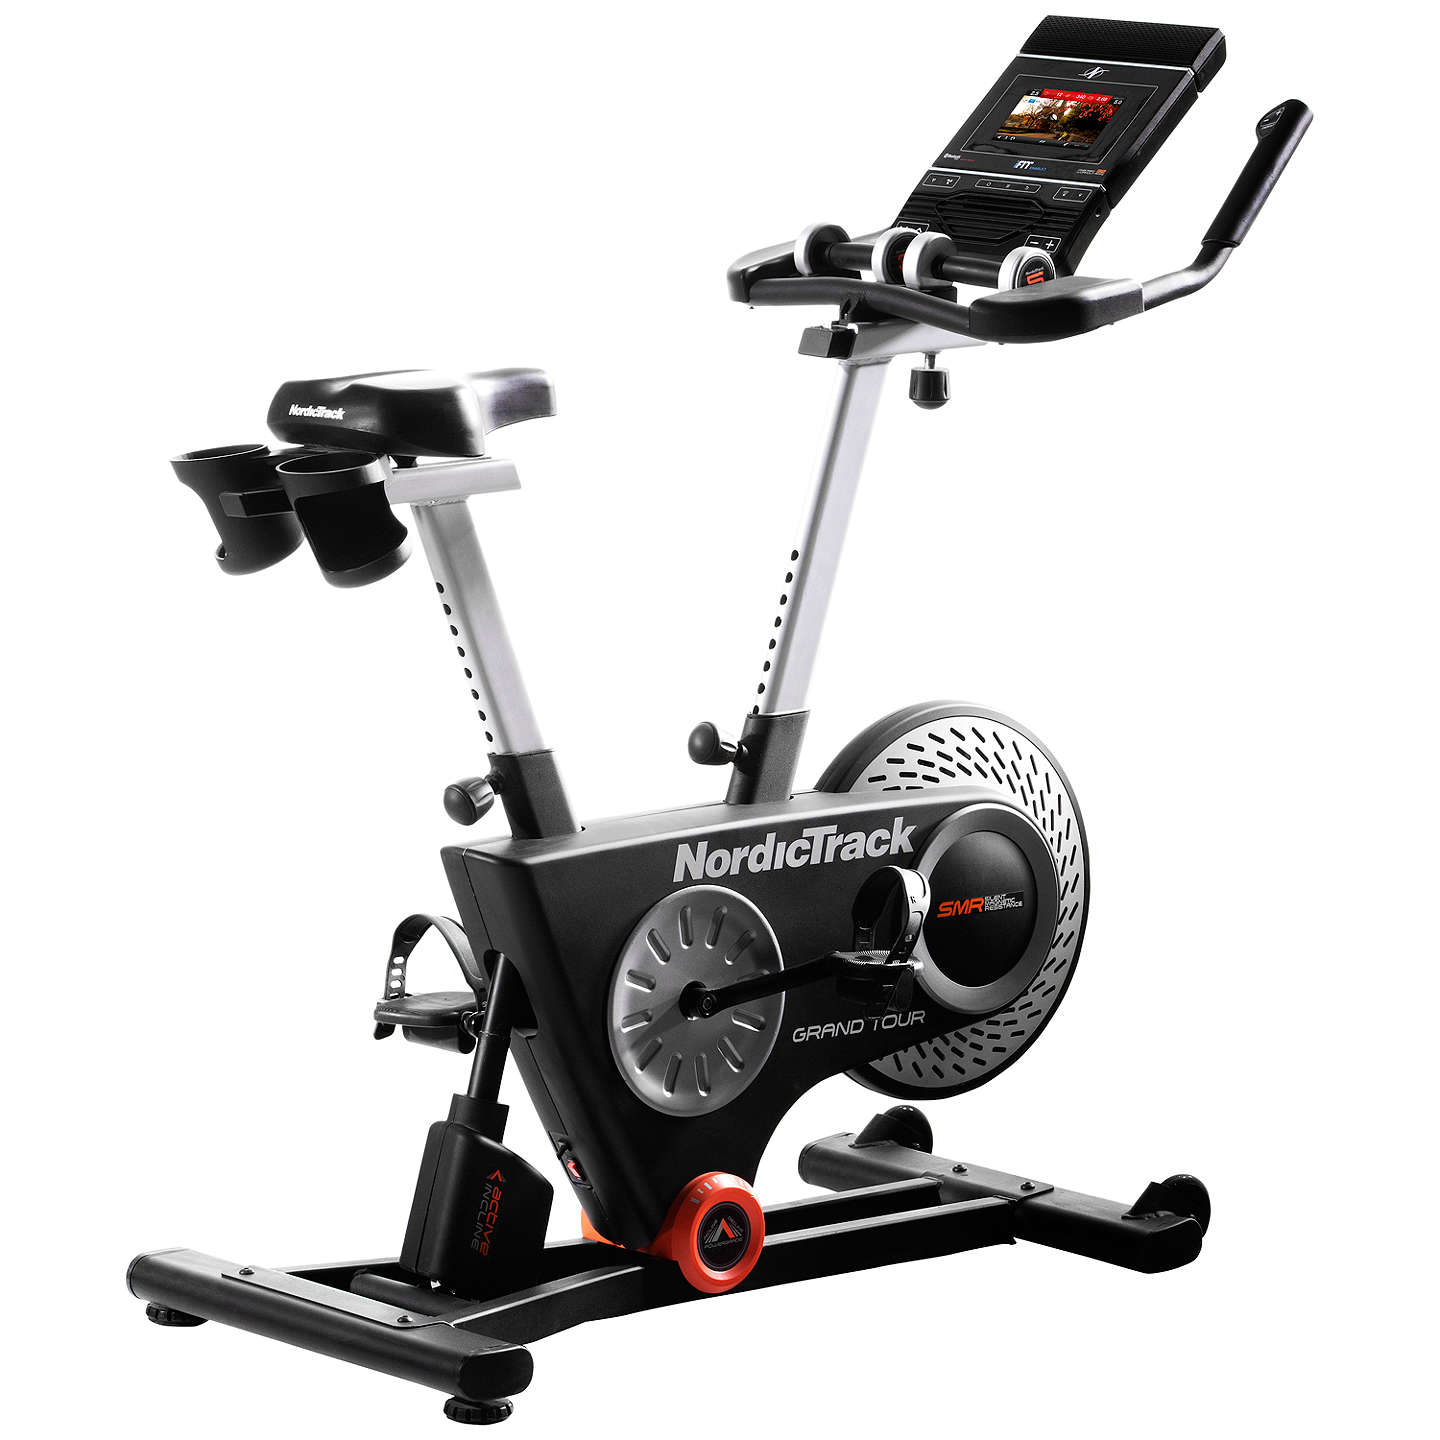 Proform Power Sensitive 7 0 Exercise Bike: NordicTrack Grand Tour Indoor Studio Bike At John Lewis